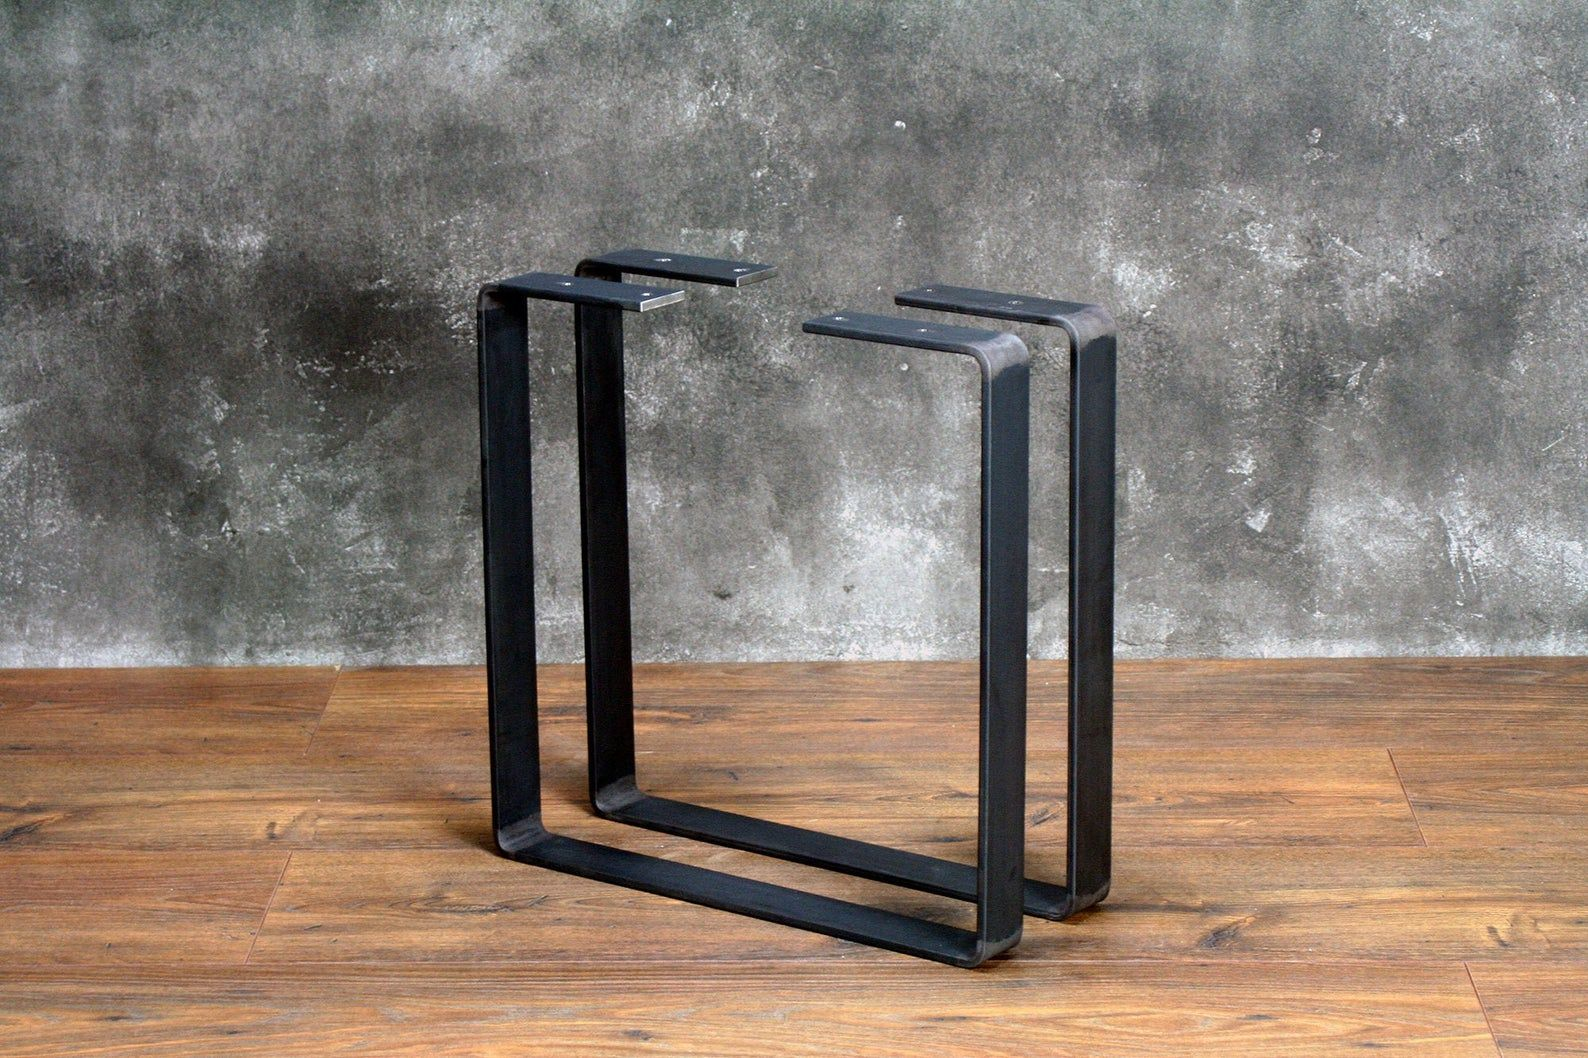 Steel Coffee Table Legs Metal Bench Legs Diy Table Legs Industrial Pair Diy Table Legs Coffee Table Legs Metal Coffee Table Legs